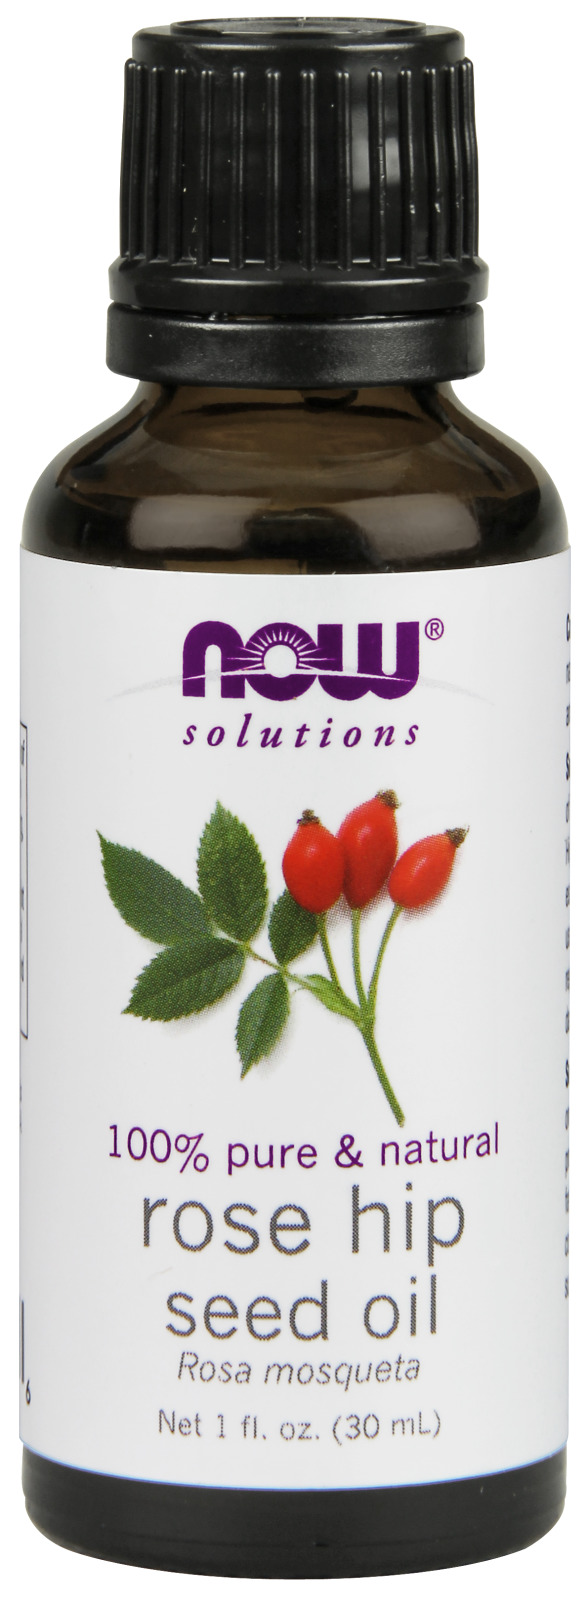 Rose Hip Seed Oil 1 fl oz (30 ml) by NOW